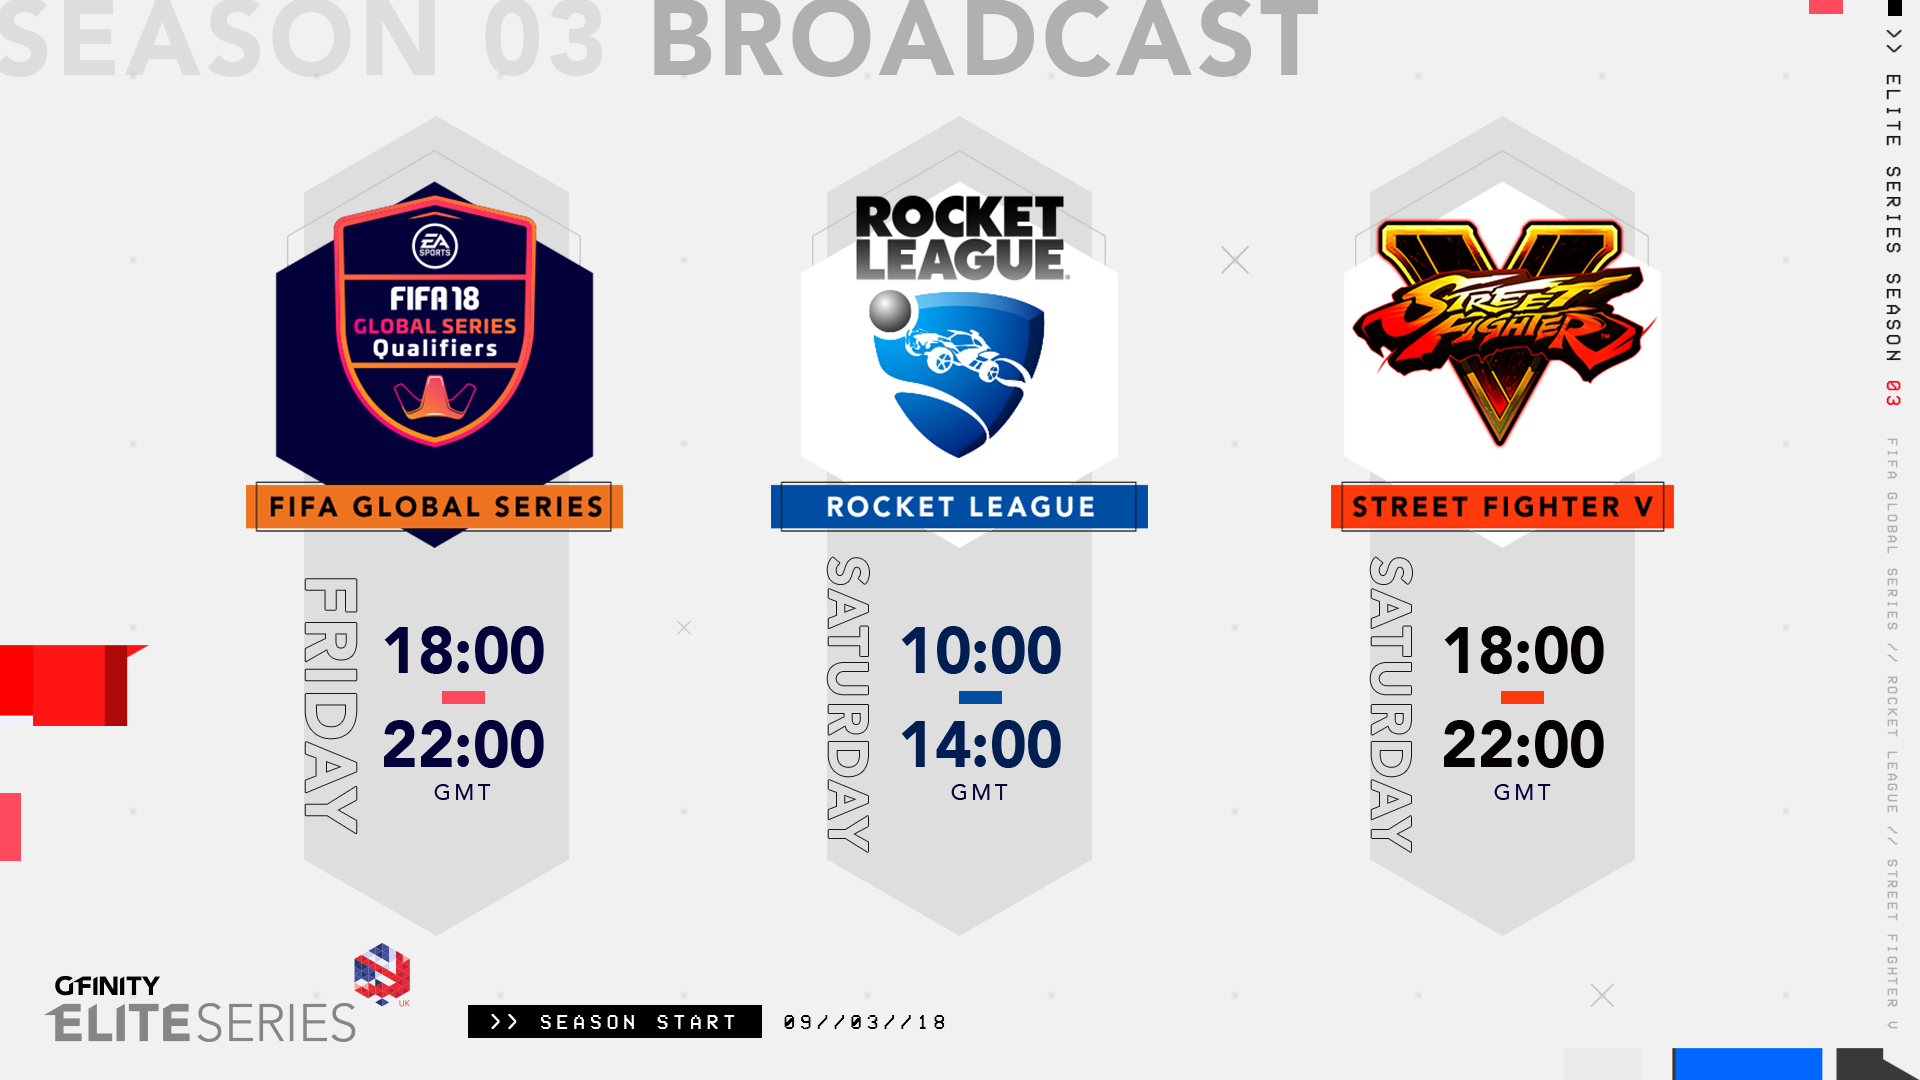 The official schedule for Gfinity Elite Series Season 3. (Source: Gfinity)